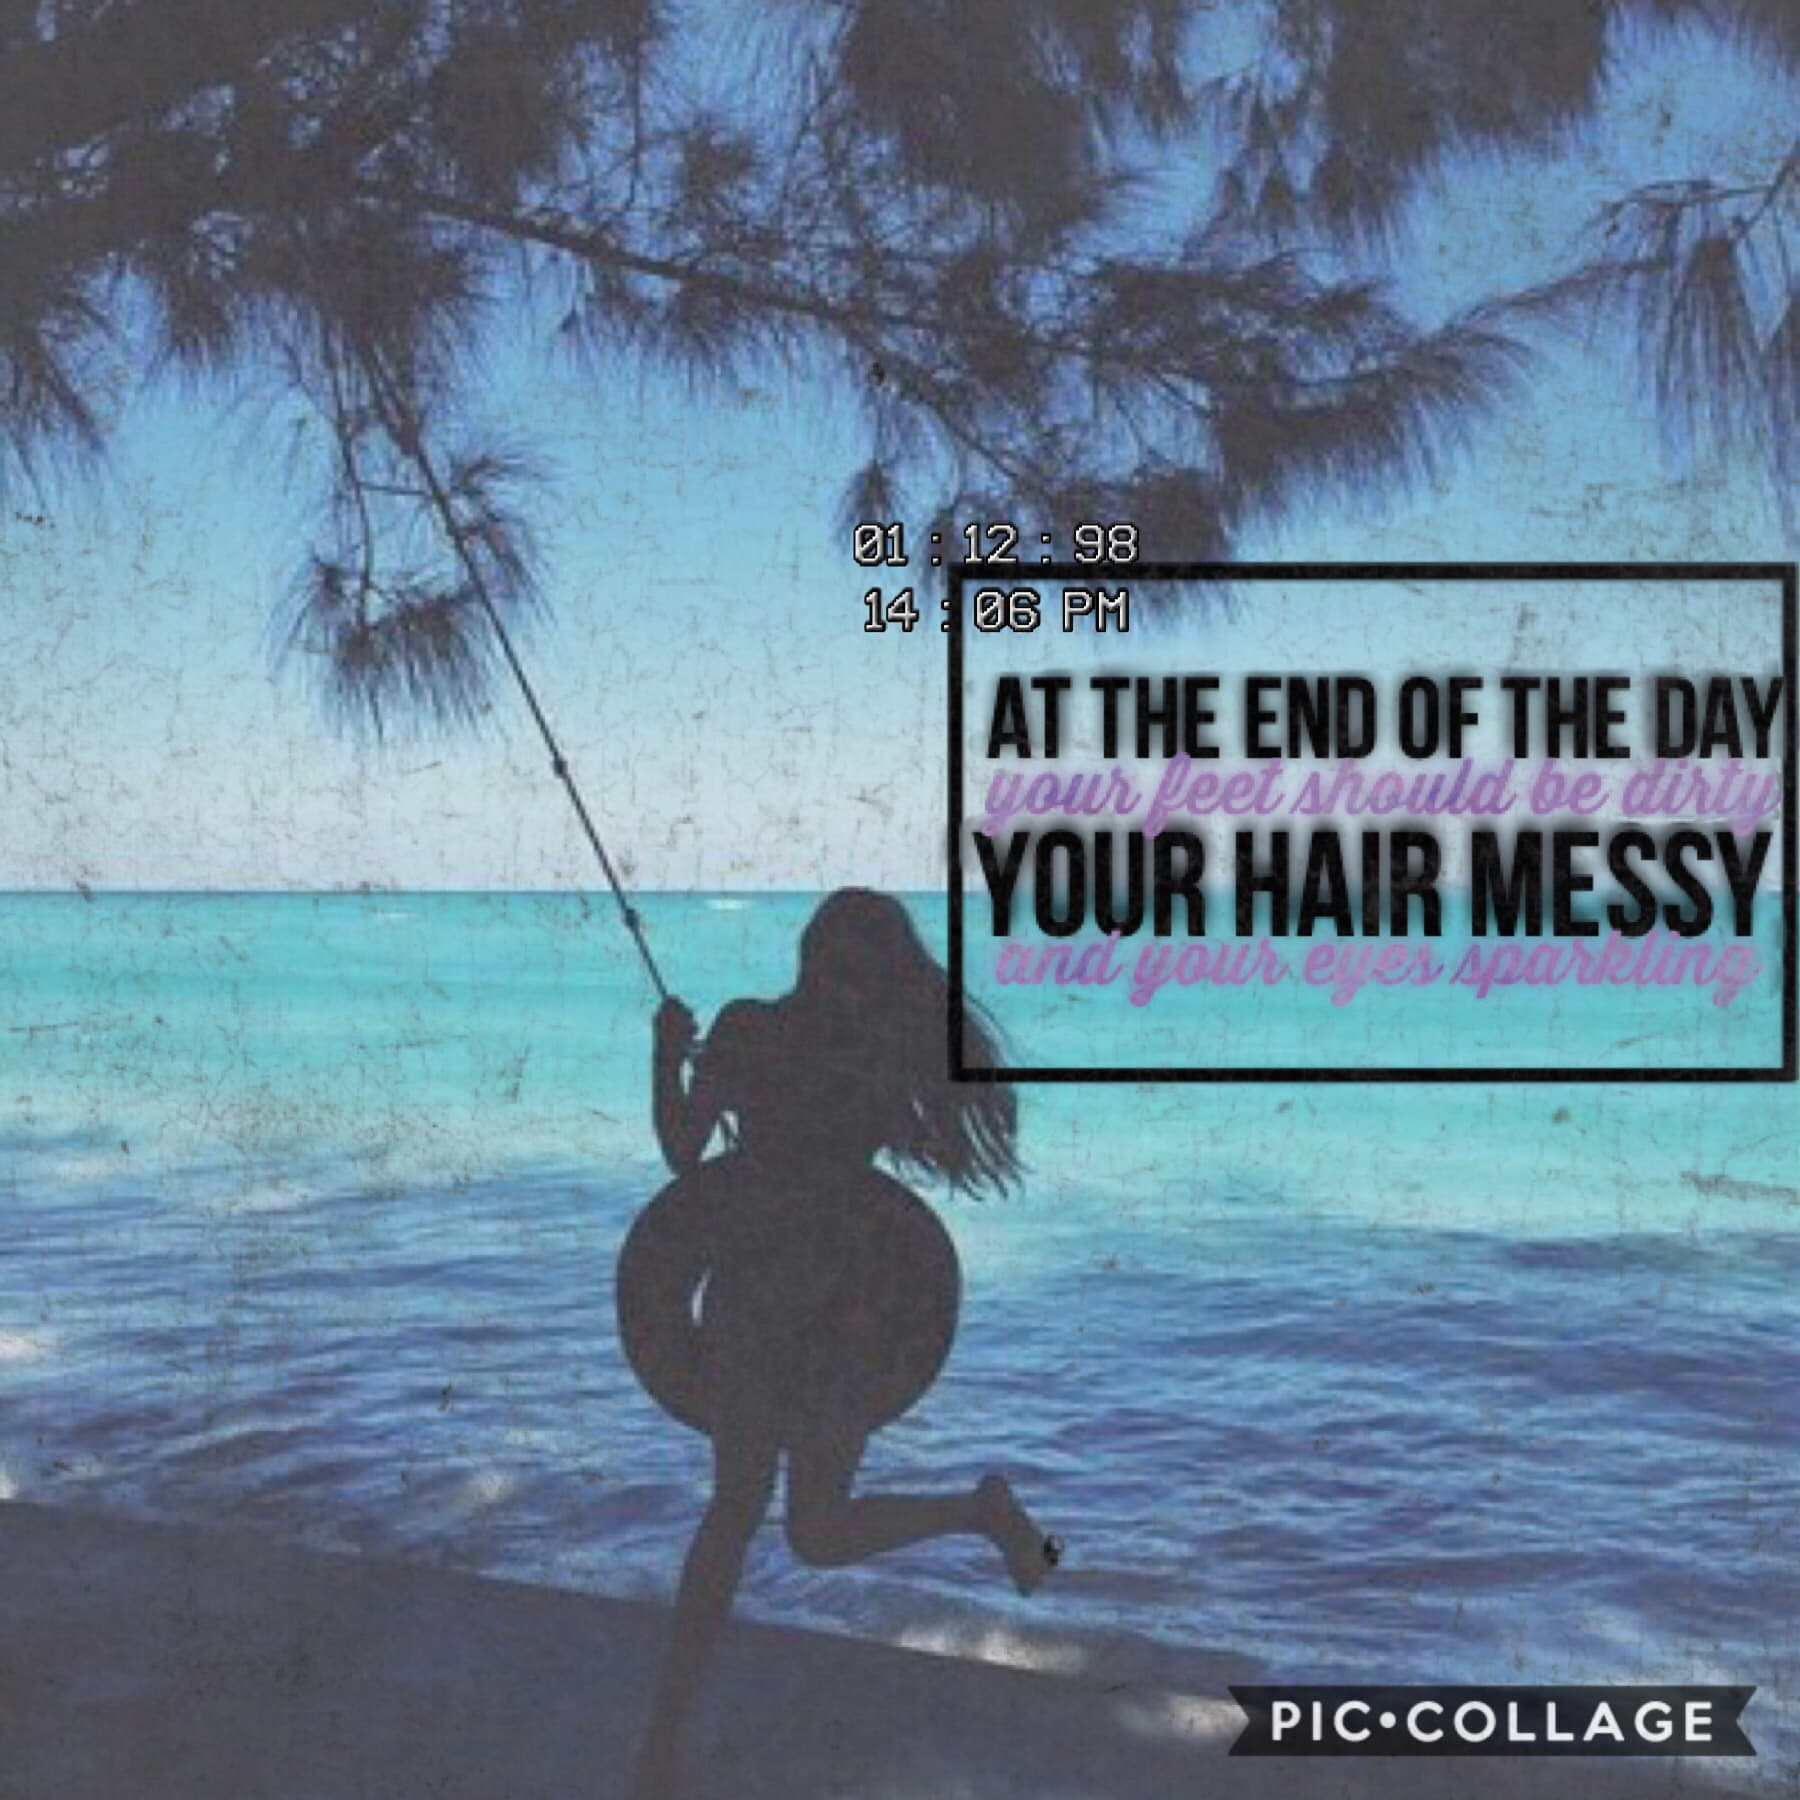 •at the end of the day your feet should be dirty, your hair messy and your eyes sparkling•